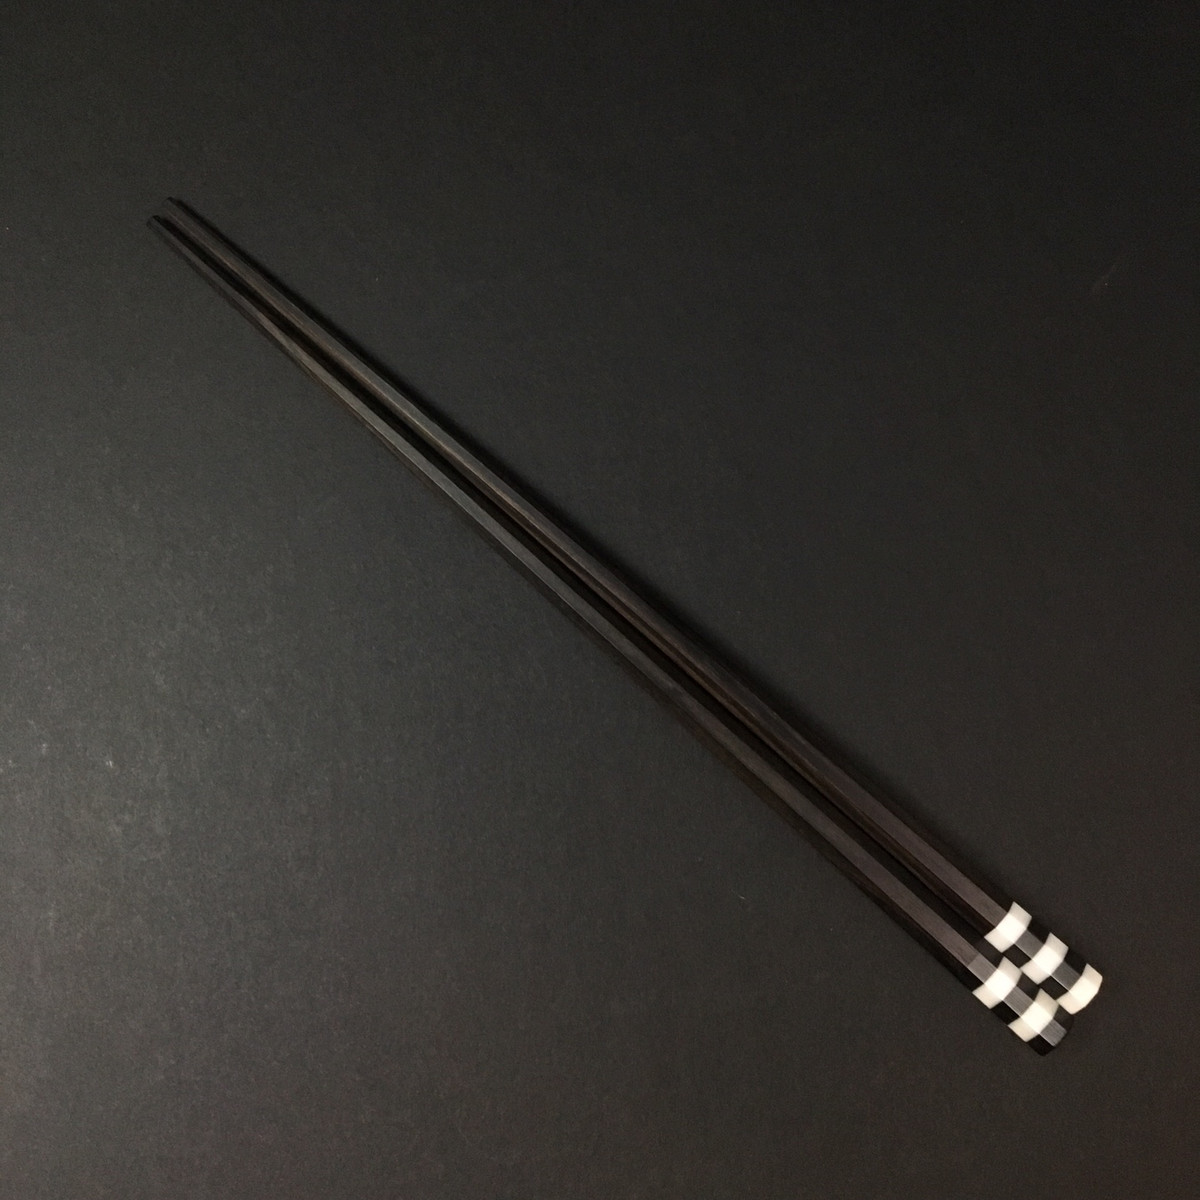 Marunao -Eight Sided Chopsticks - Black Corian + Ebony - 225mm